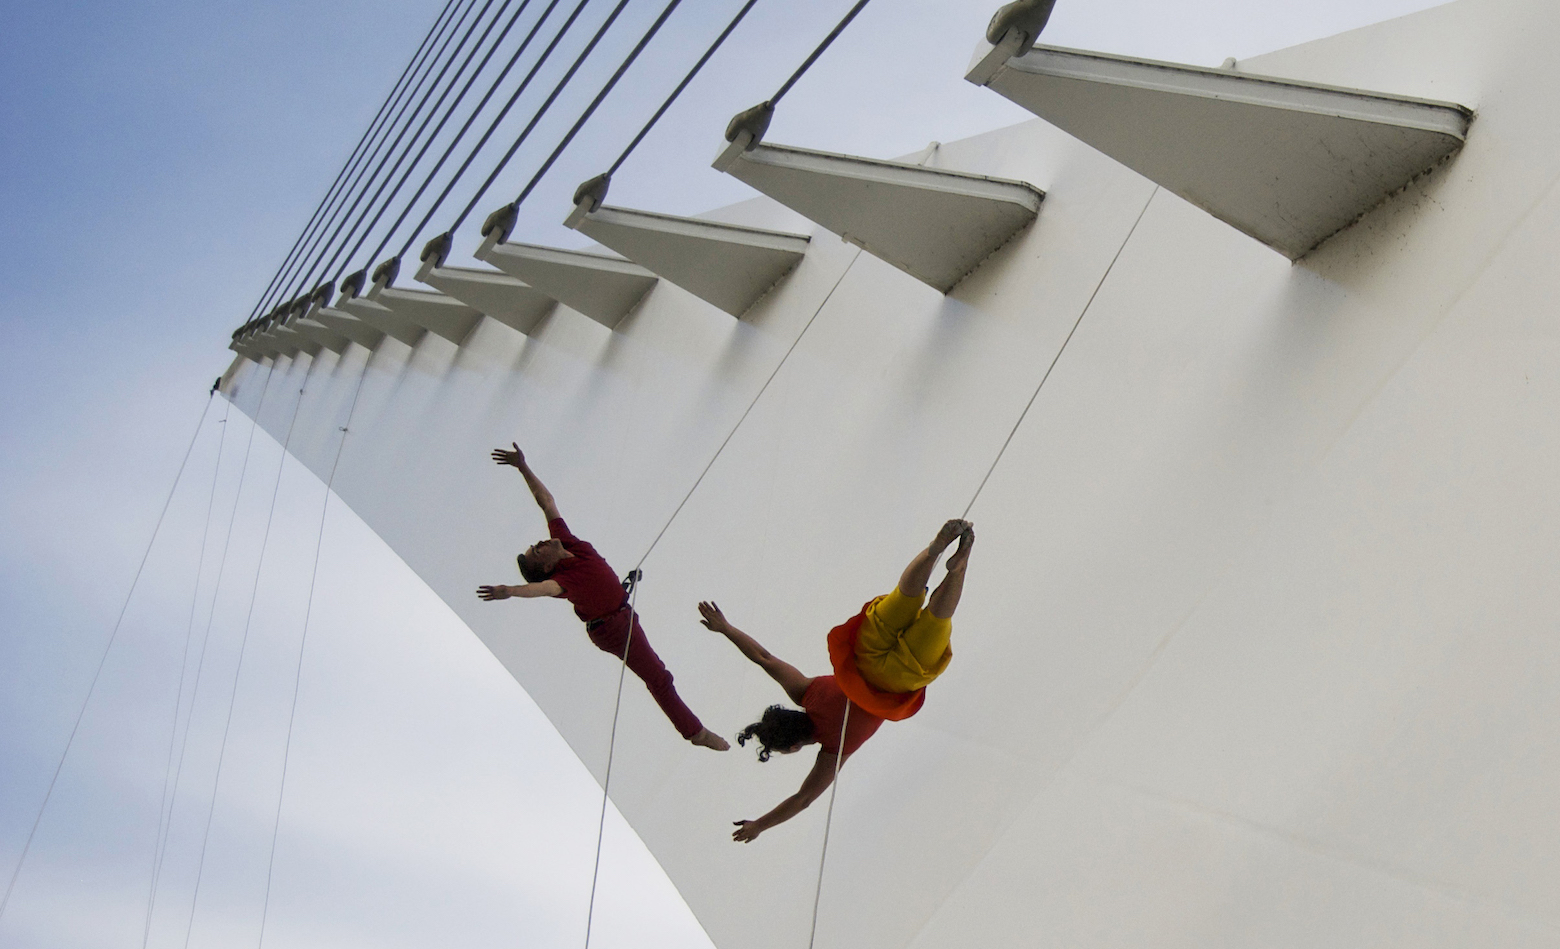 Bandaloop dancers on the Ann and Robert H. Lurie Tower.